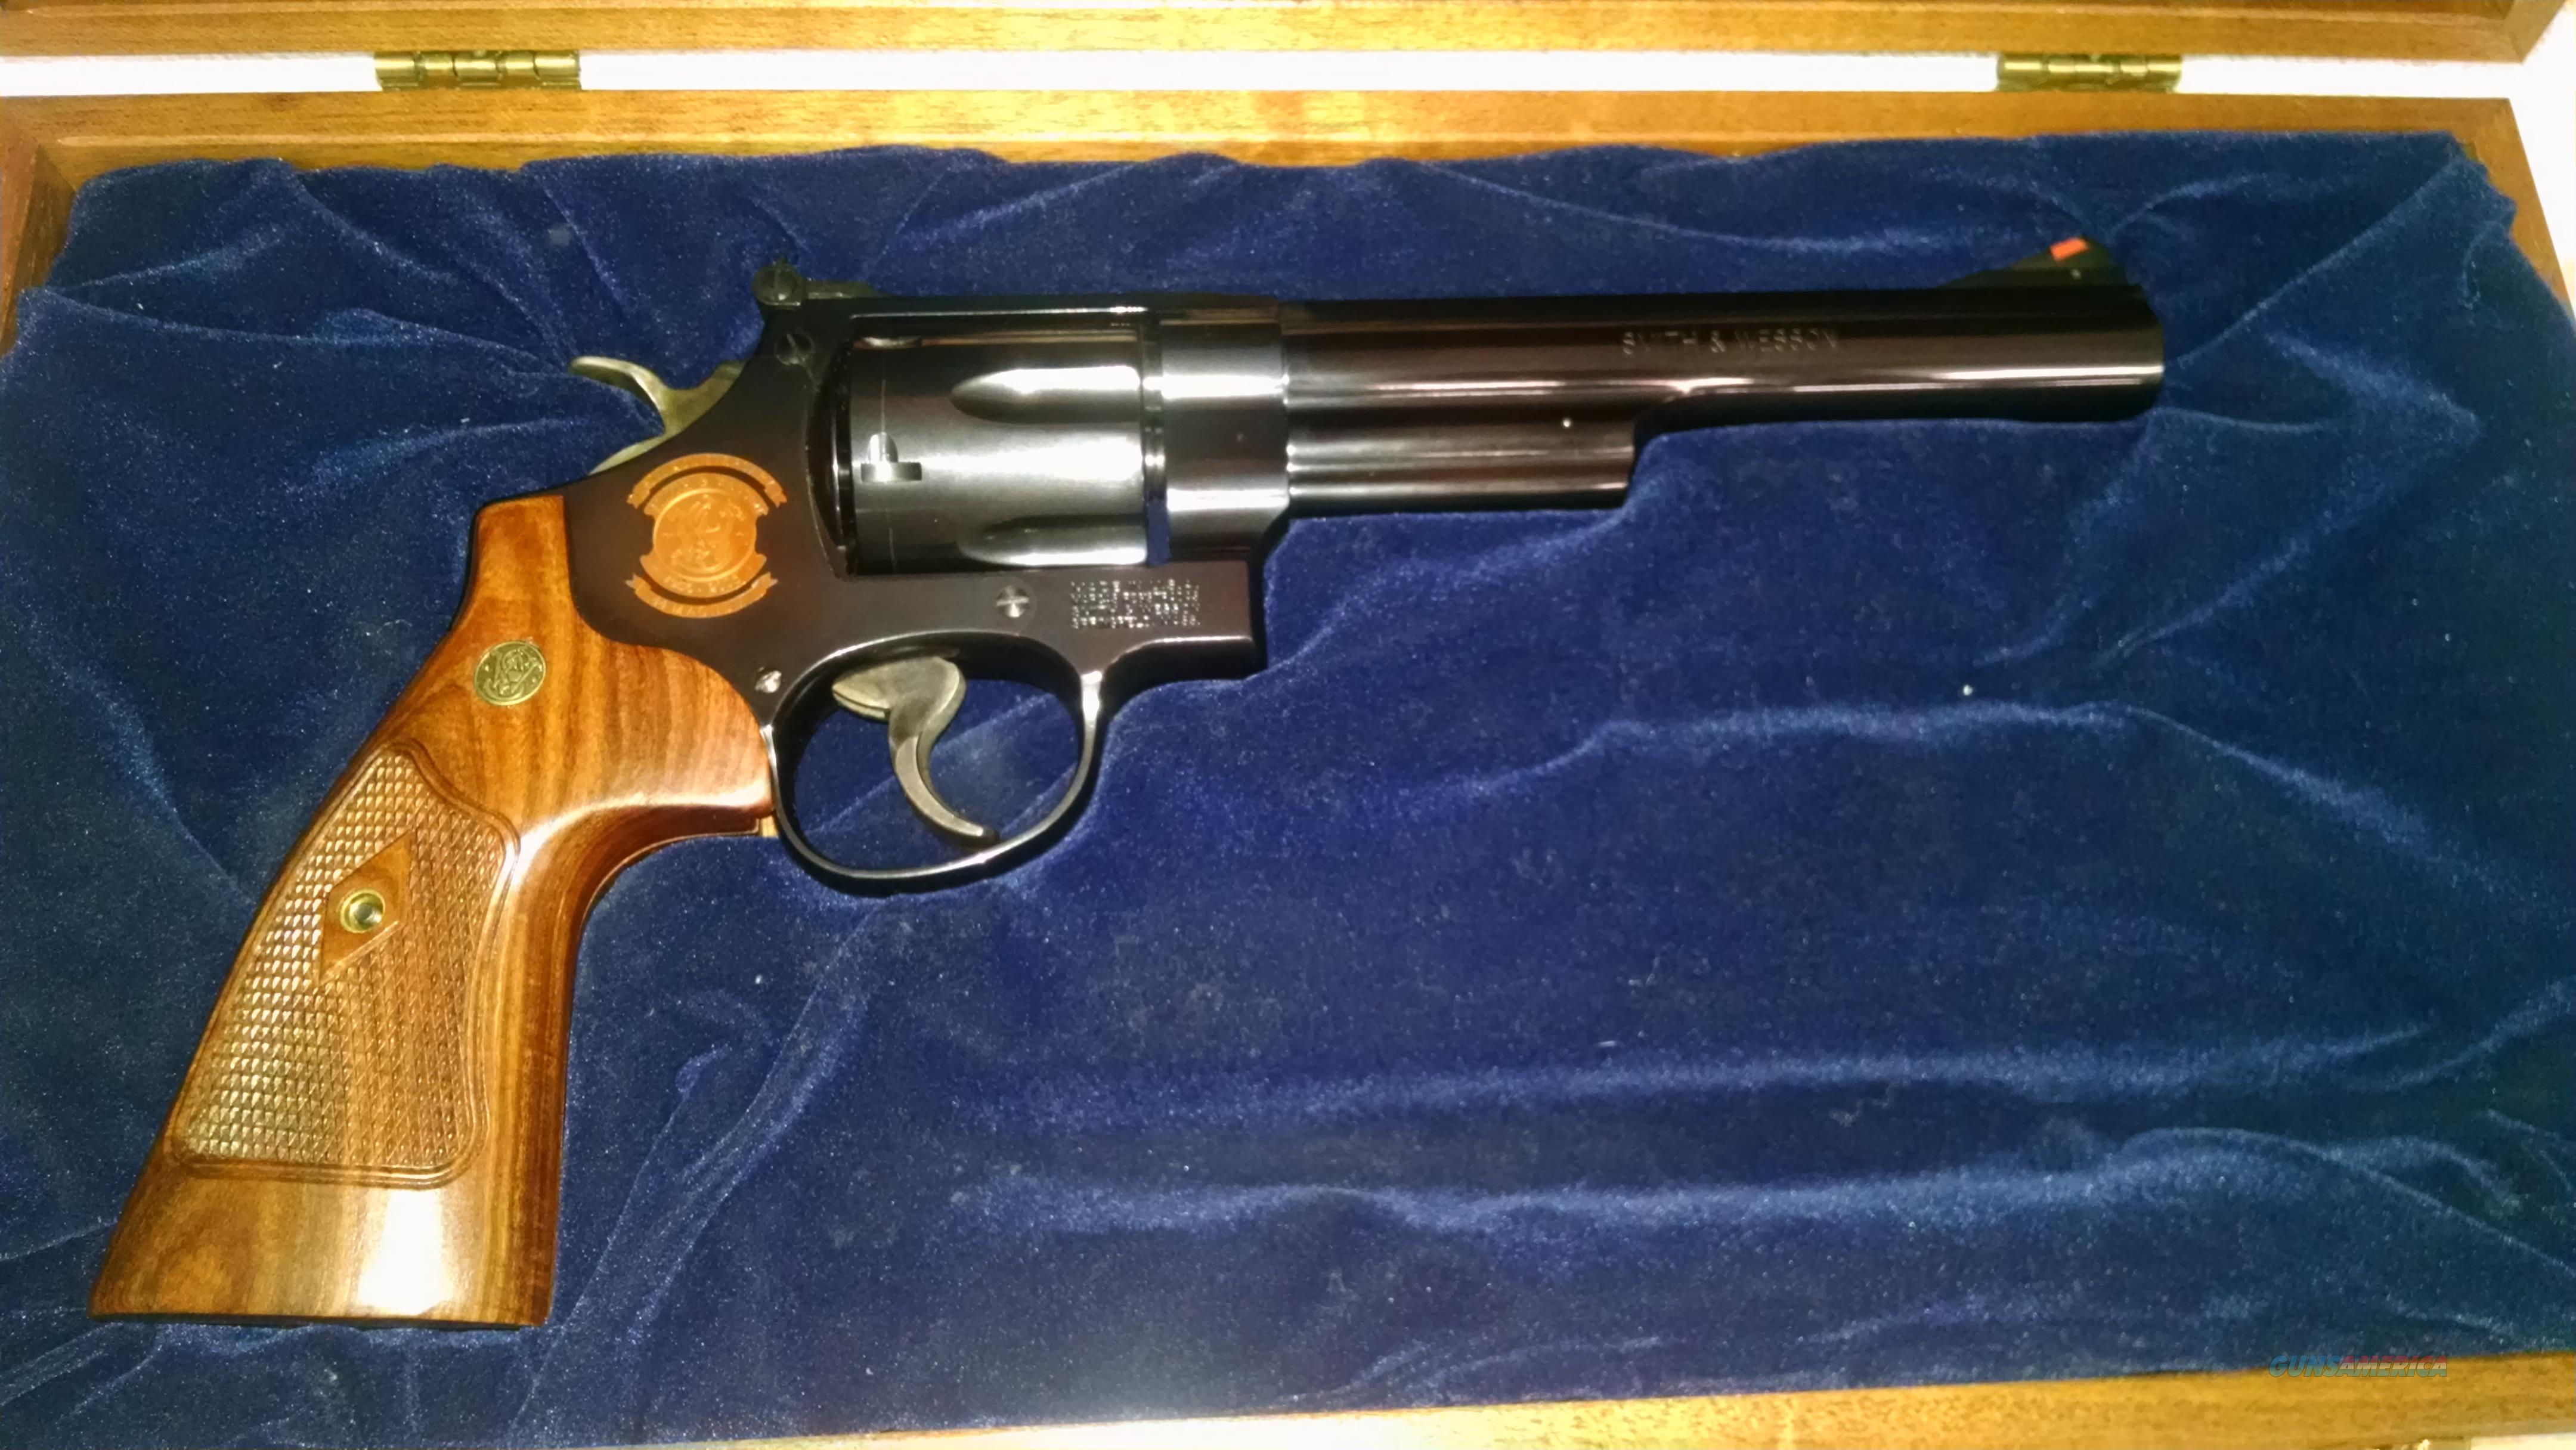 Smith and Wesson Model 29, 44 Mag.  50th anniversary Model  Guns > Pistols > Smith & Wesson Revolvers > Full Frame Revolver